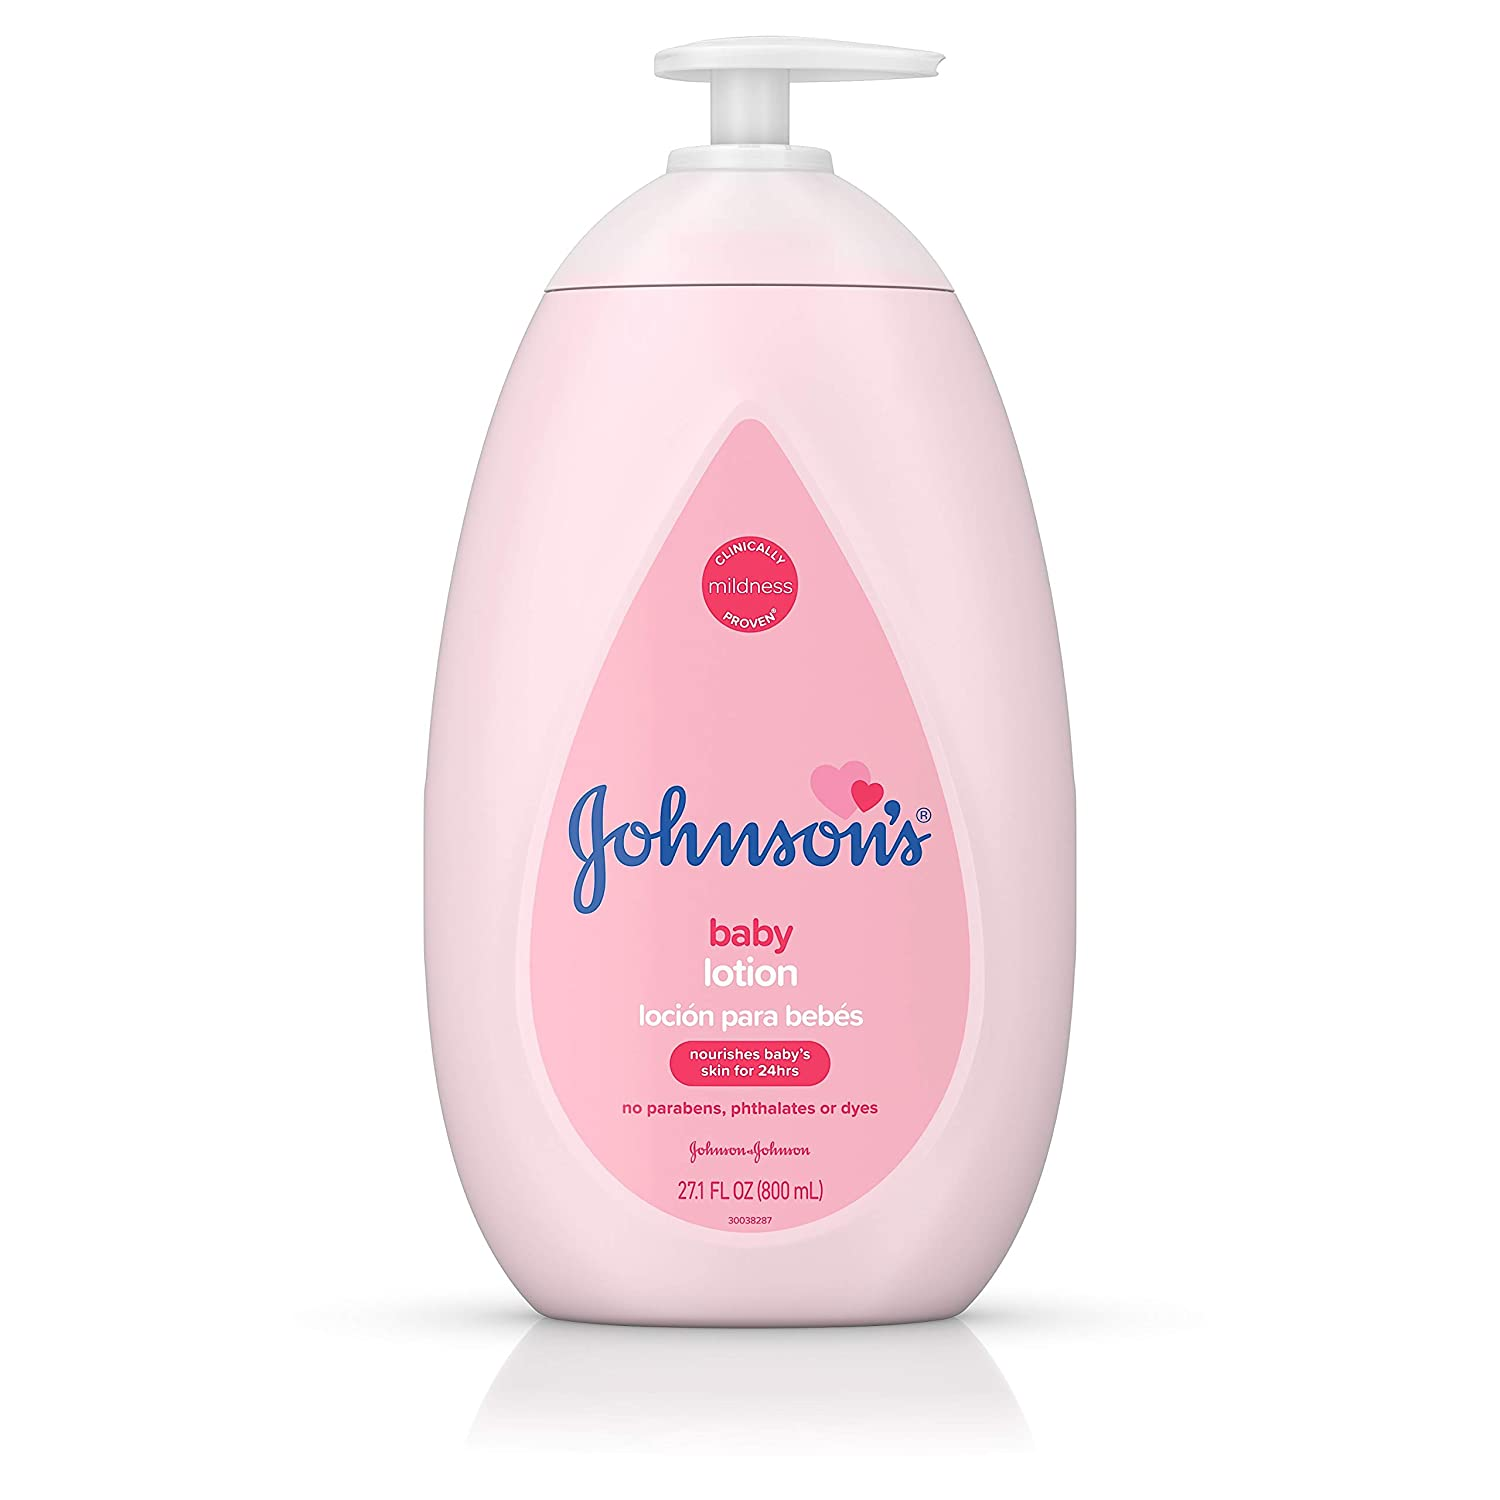 Johnson's Moisturizing Pink Baby Lotion with Coconut Oil, Hypoallergenic, 27.1 fl. oz